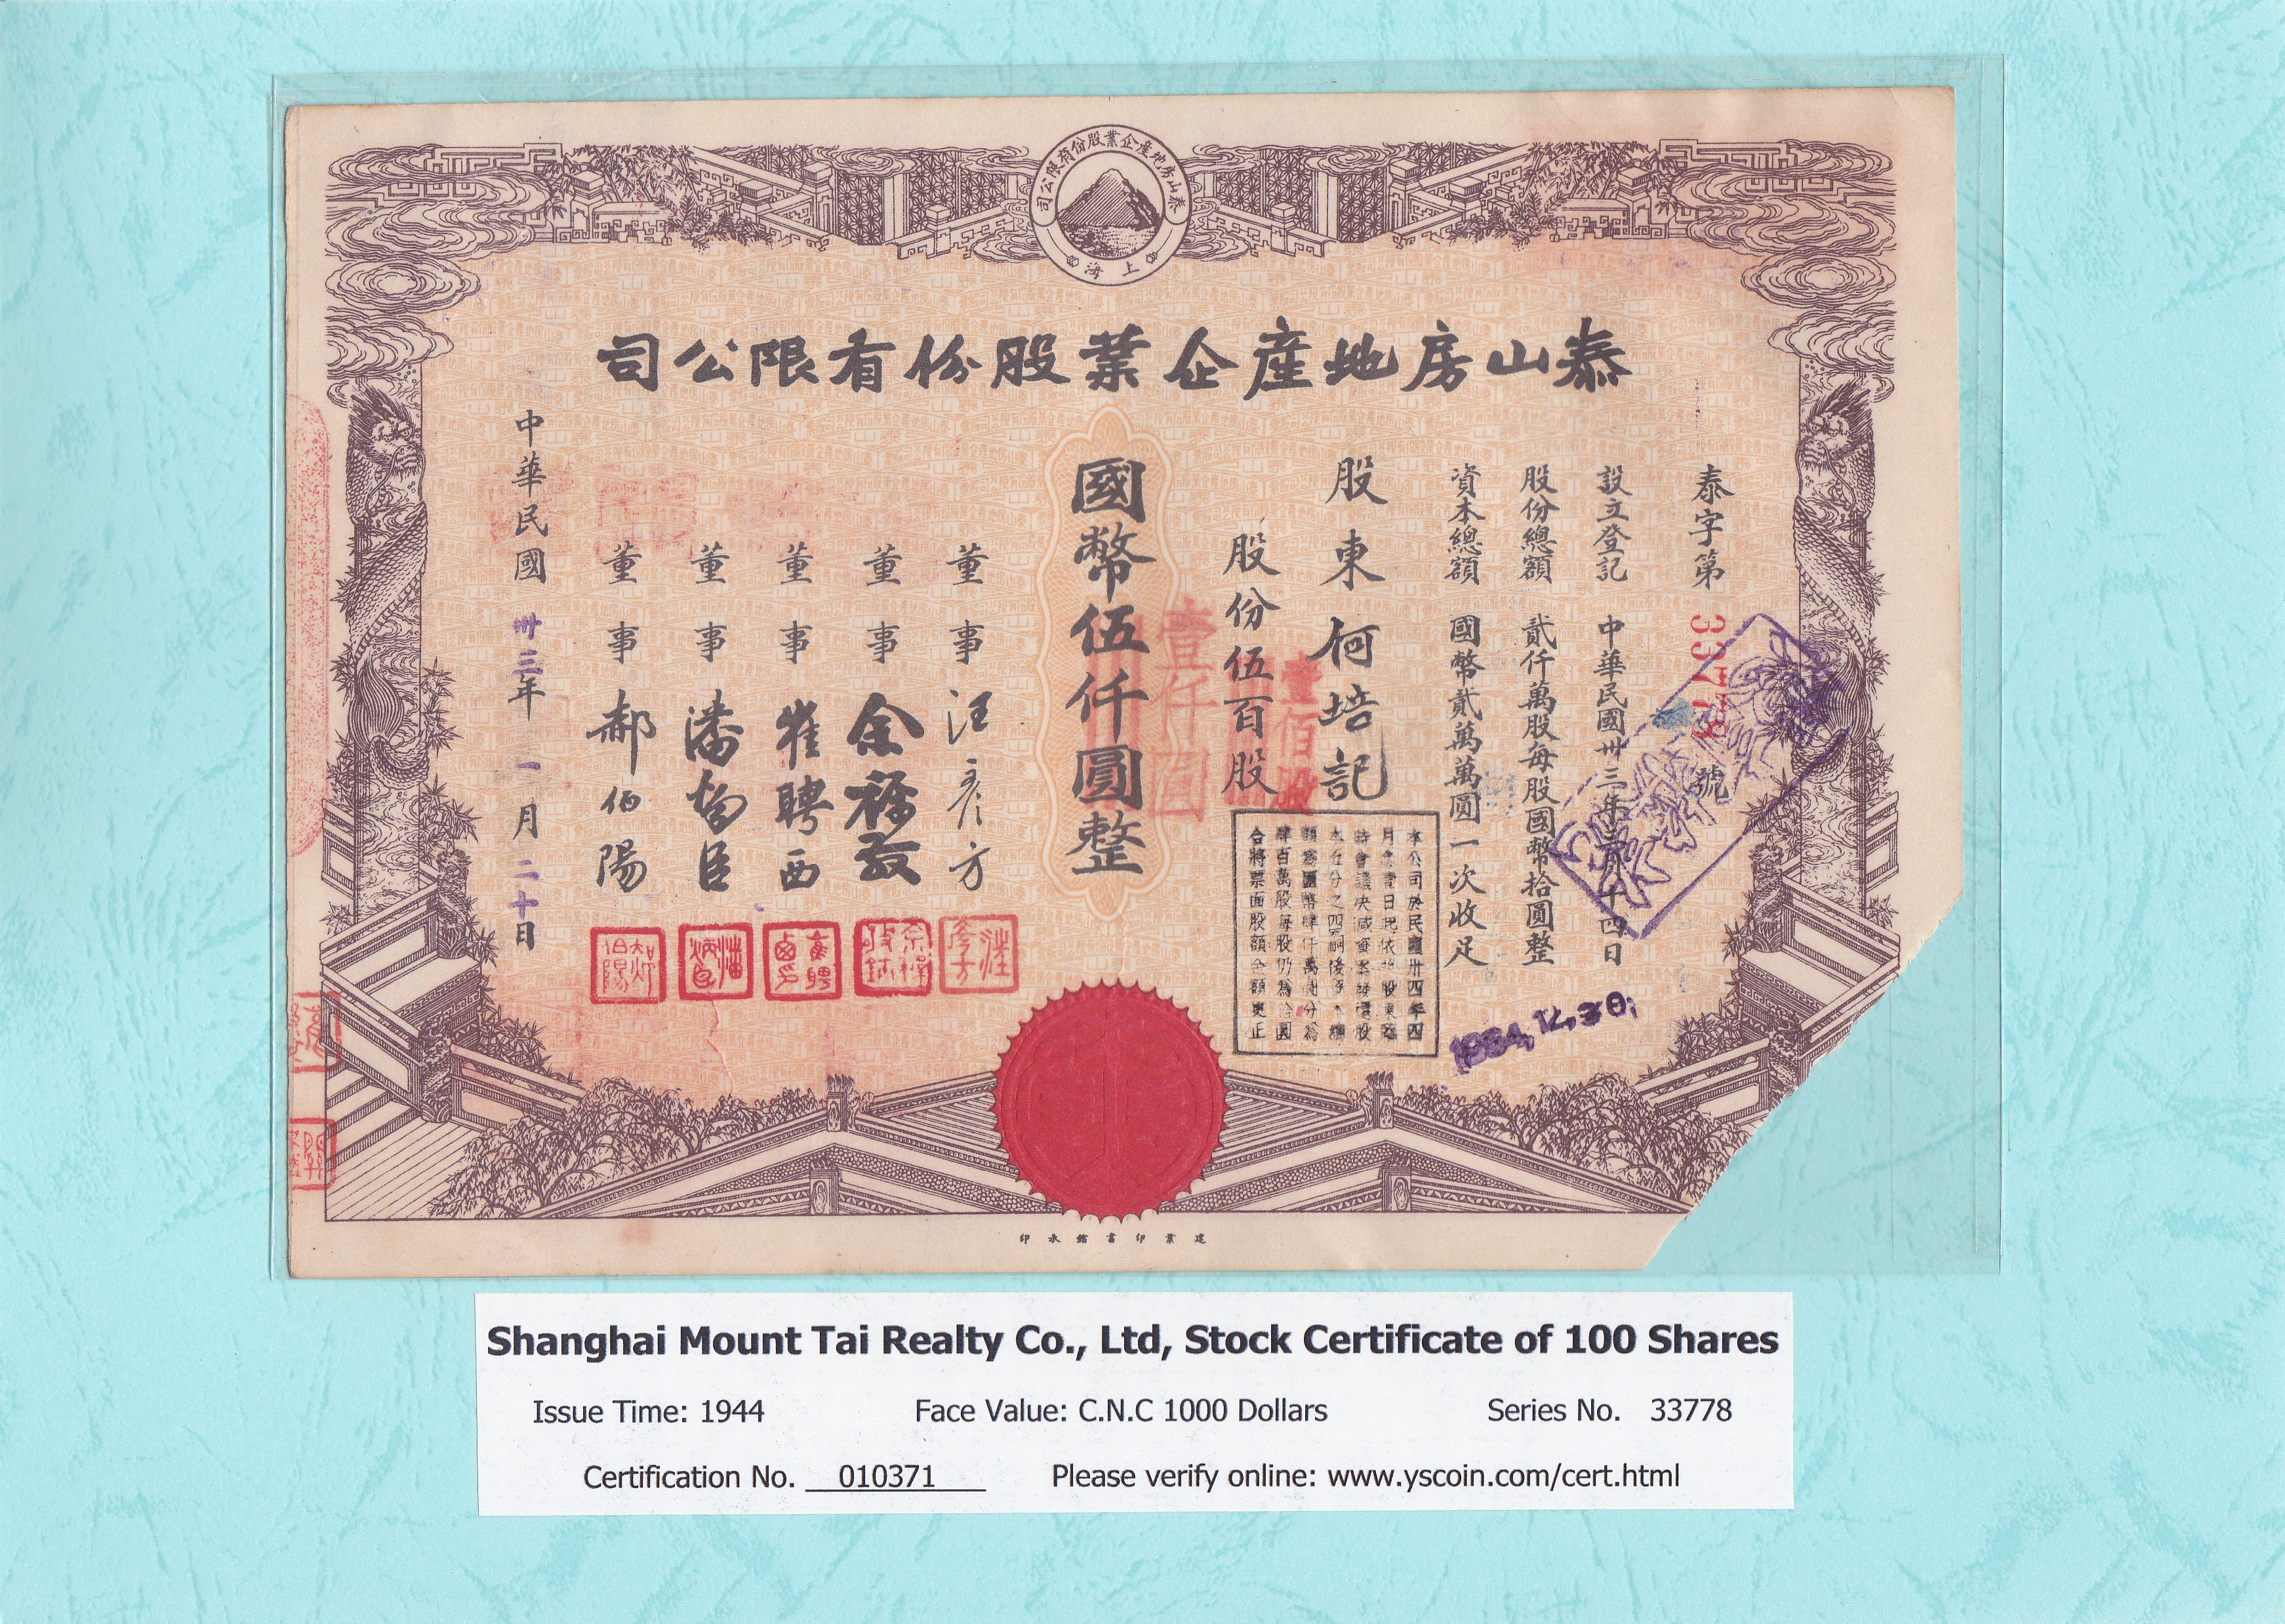 010371, Shanghai Mount Tai Realty Co., Ltd, Stock Certificate of 100 Shares